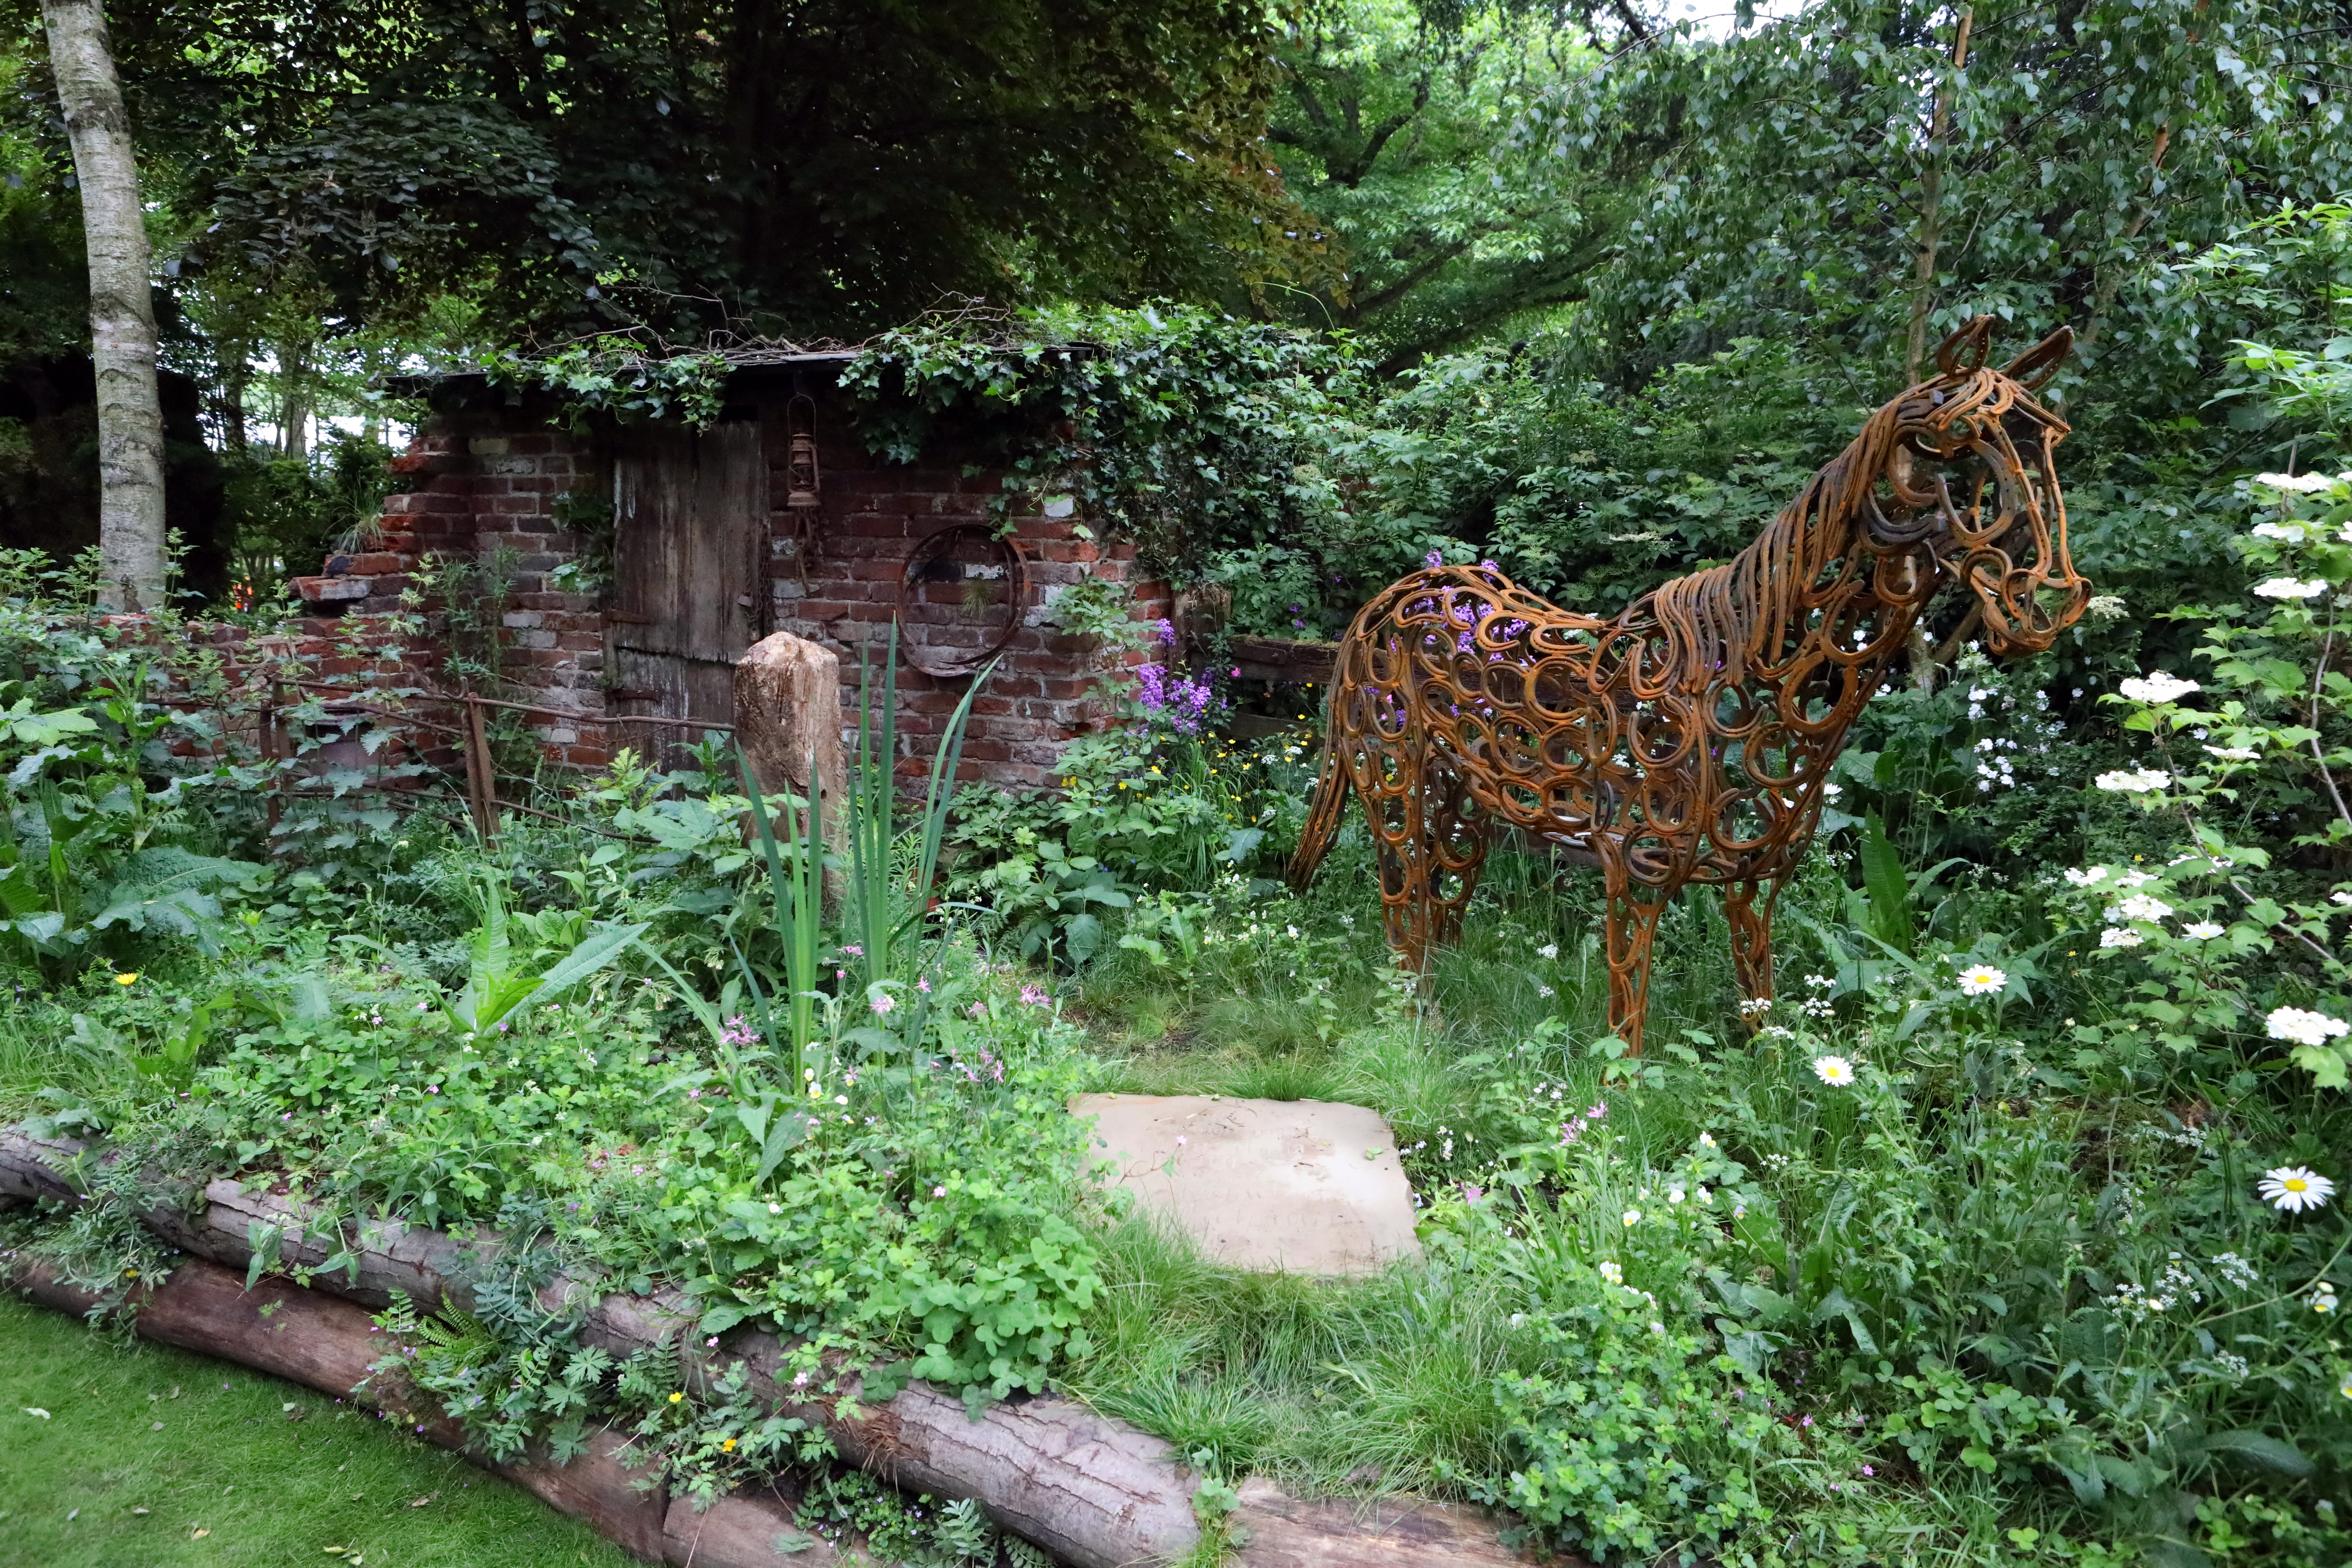 Chelsea flower show 2017 corporate entertainment packages - World Horse Welfare Garden Wins Gold Medal At Rhs Chelsea Flower Show 2017